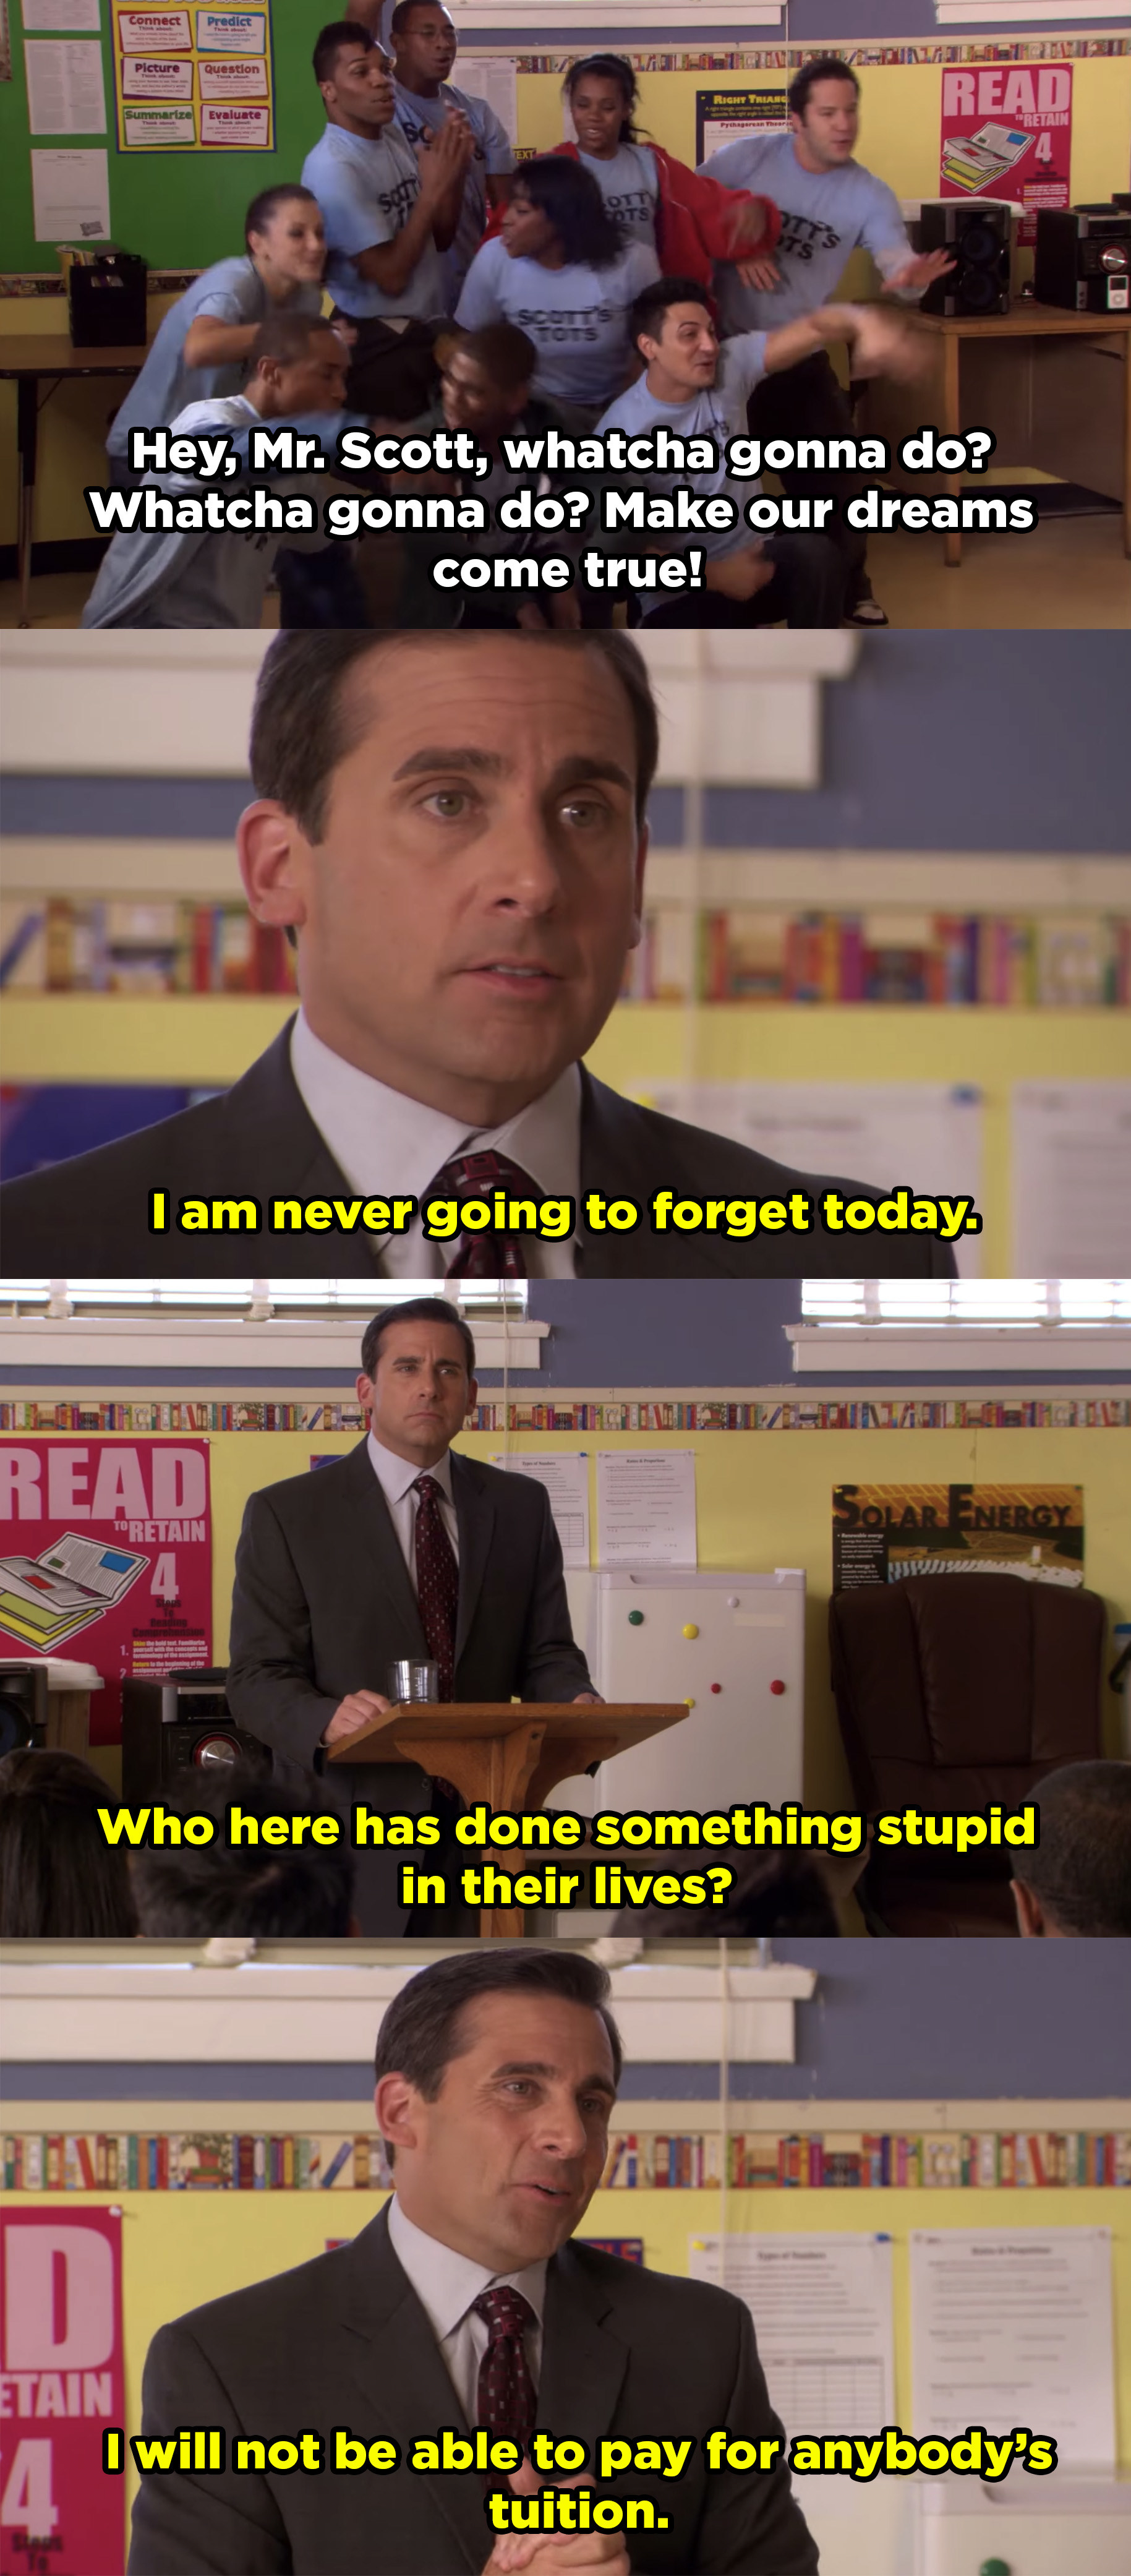 Michael Scott telling an entire classroom of high schoolers that he won't pay for their college tuition after he promised it to them 10 years prior.